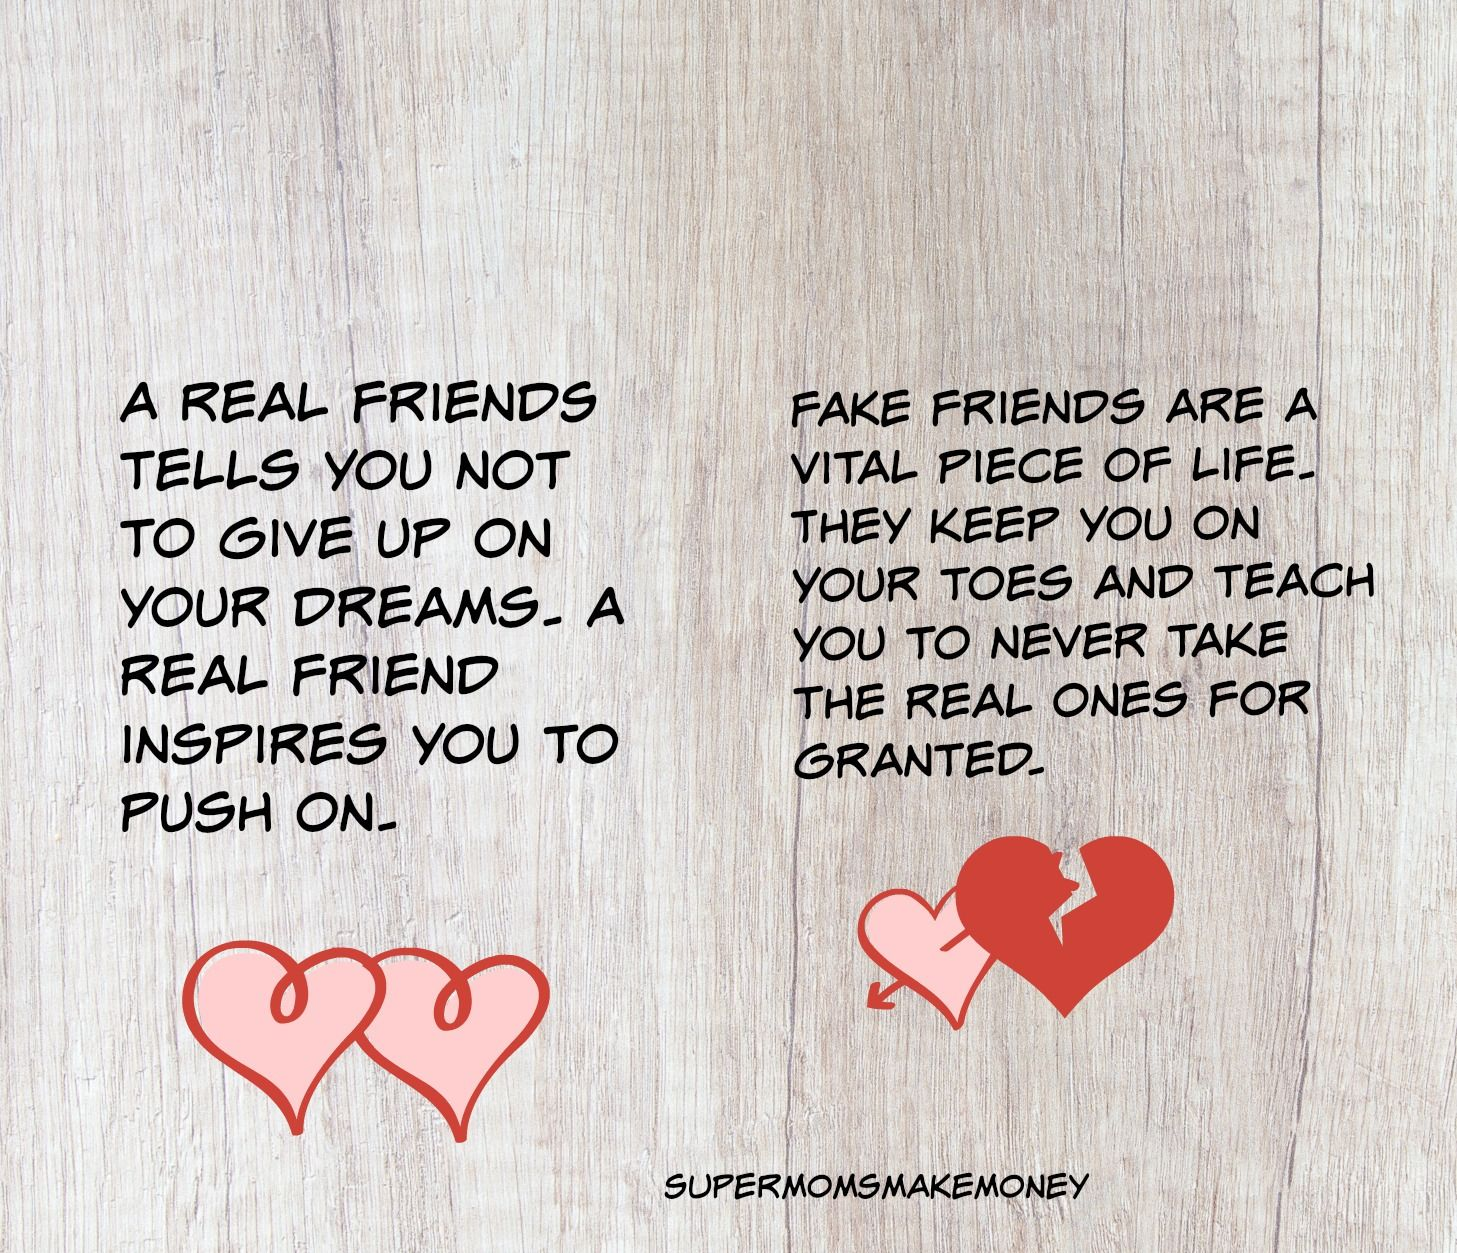 Fake Friends Vs Real Friends 10 Things That True Friends Do Super Moms Make Money Friends Quotes Fake Friend Quotes Fake Friends